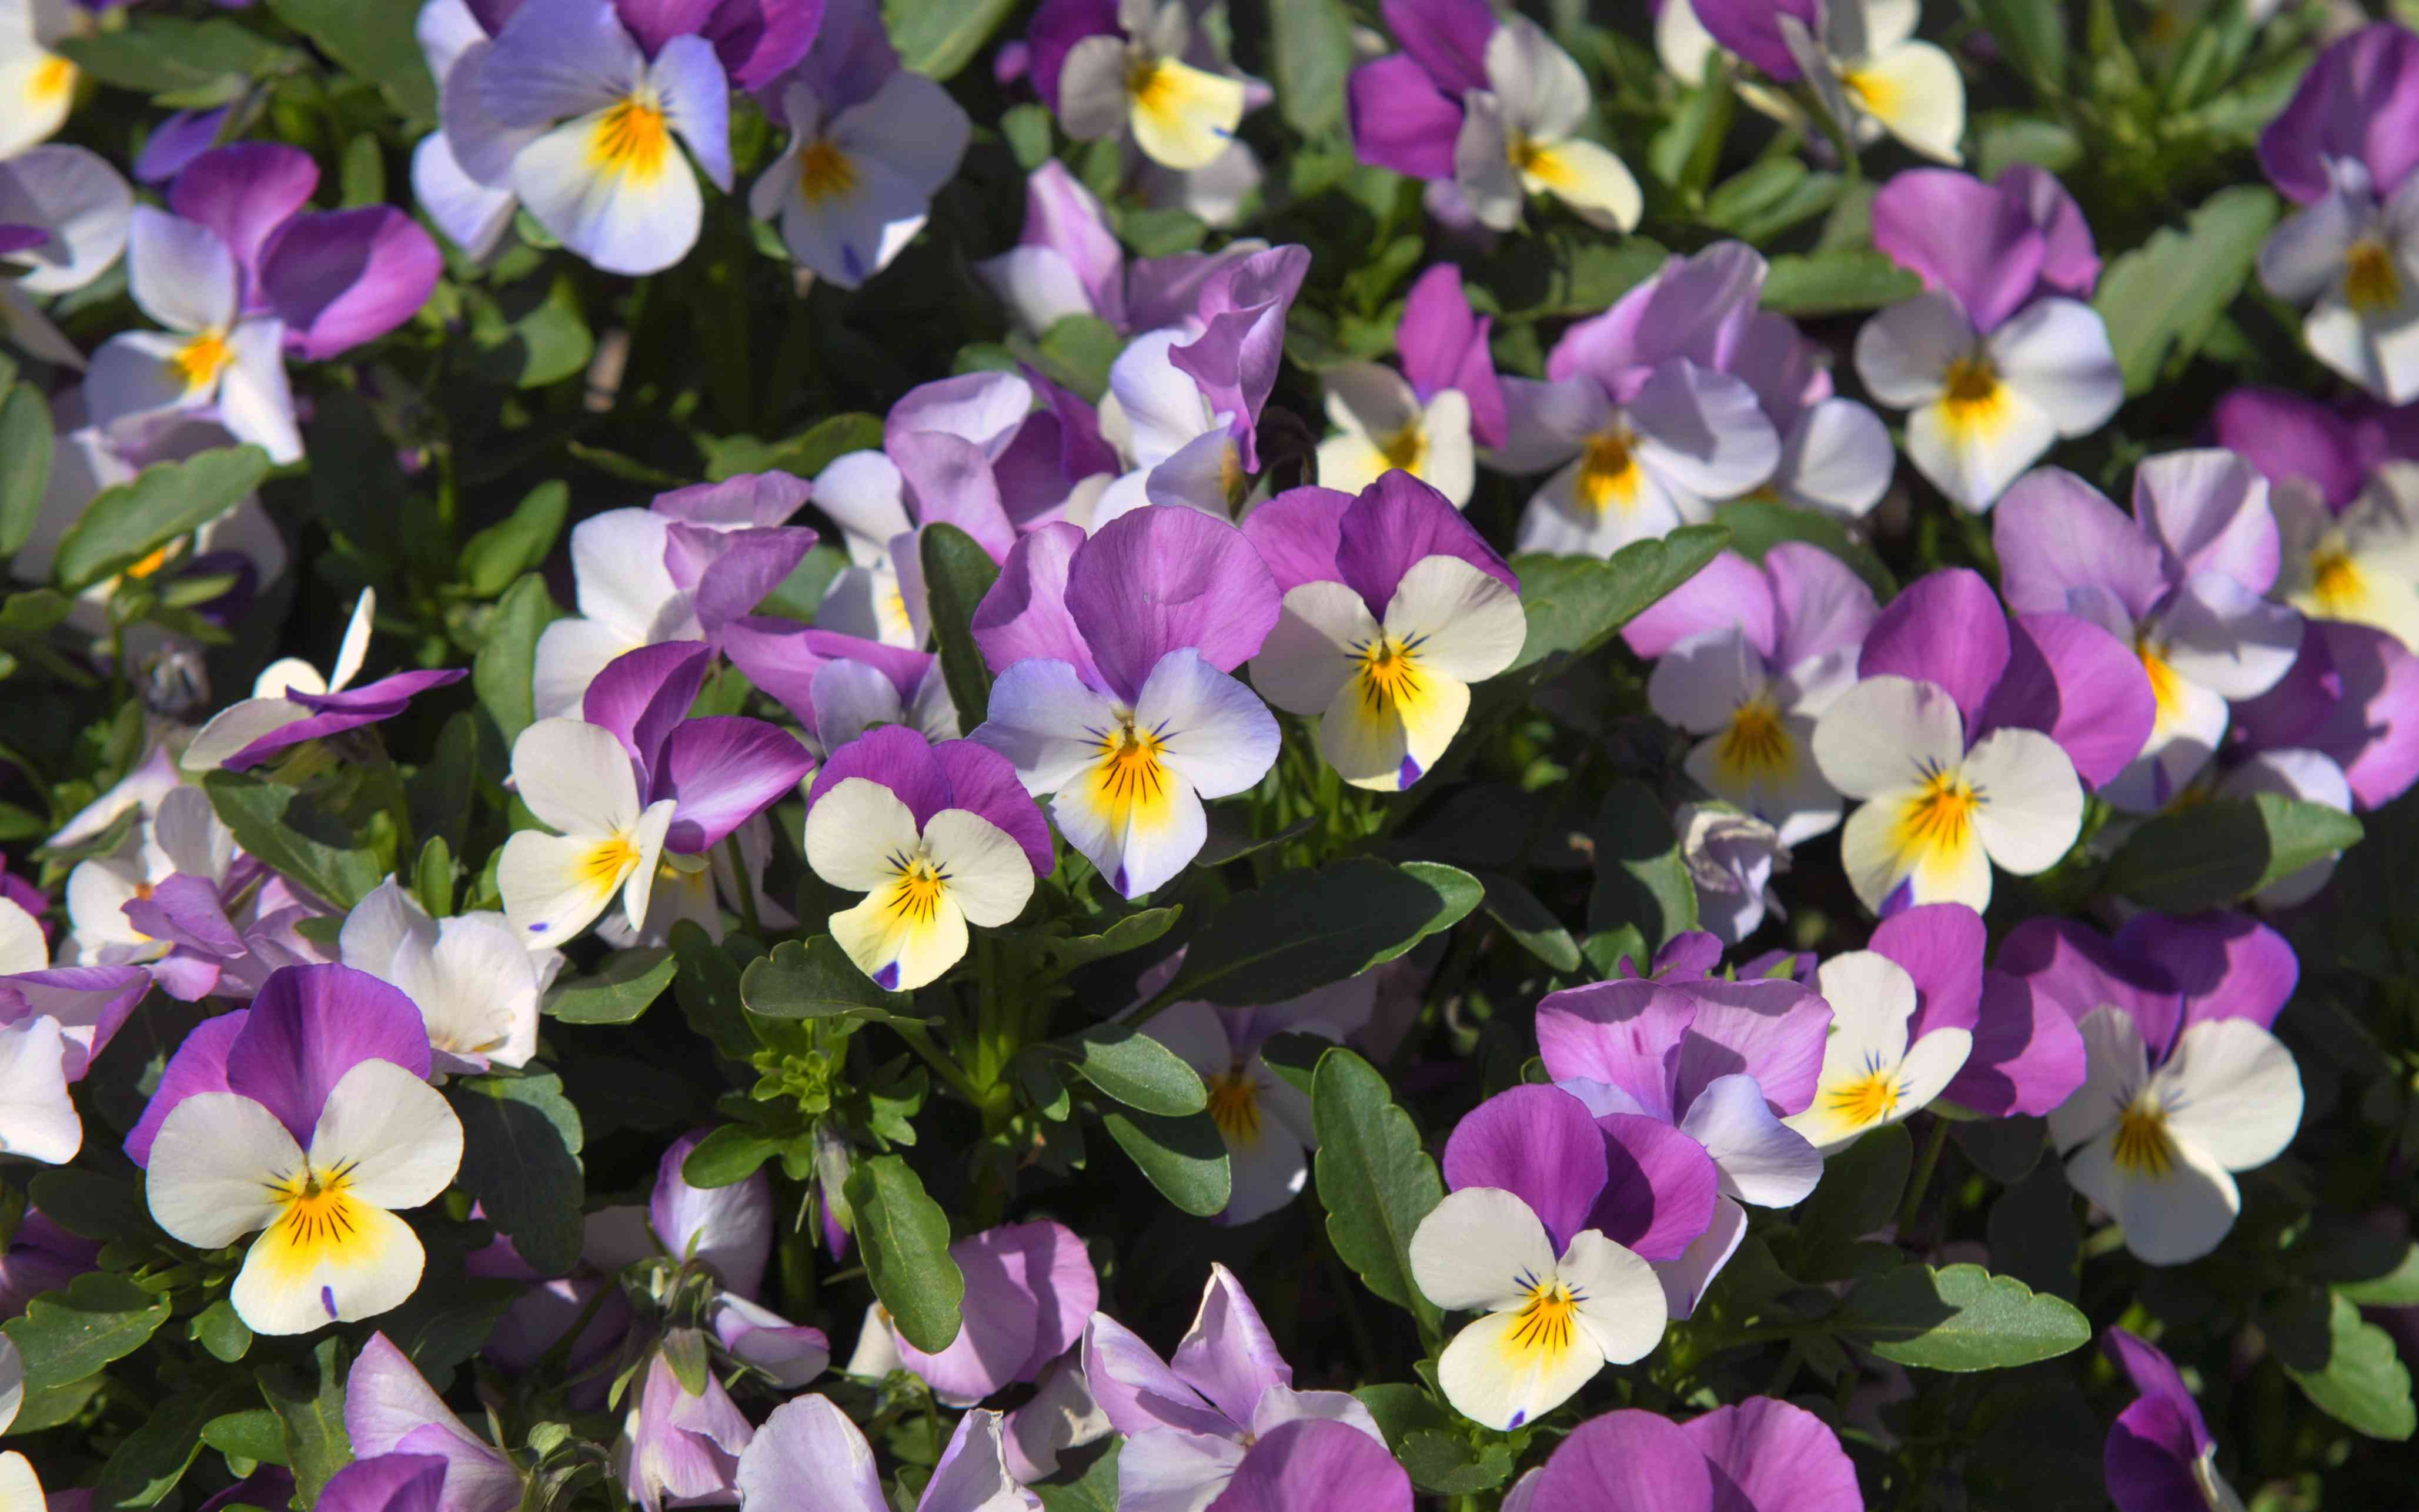 Pansy flowers with fuchsia and white petals with yellow centers